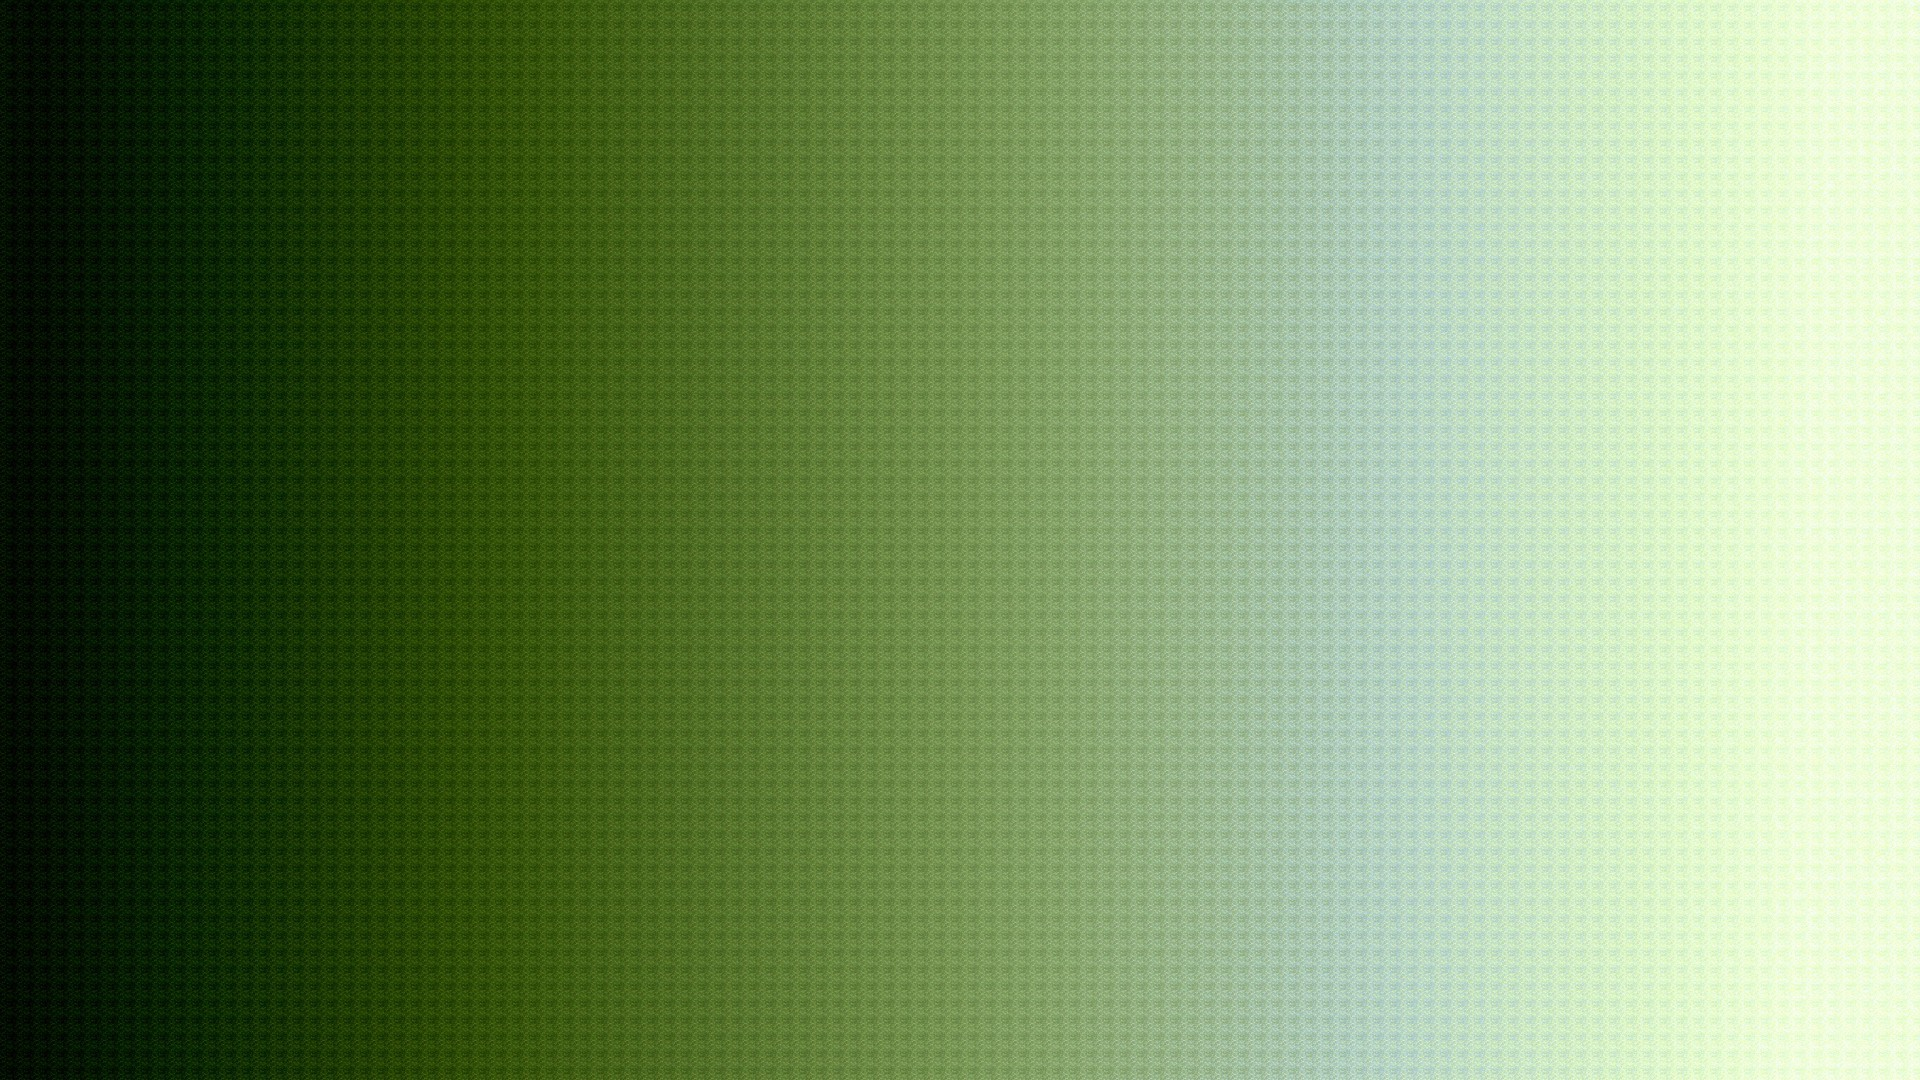 Green Gradient Background ·① Download Free Stunning High